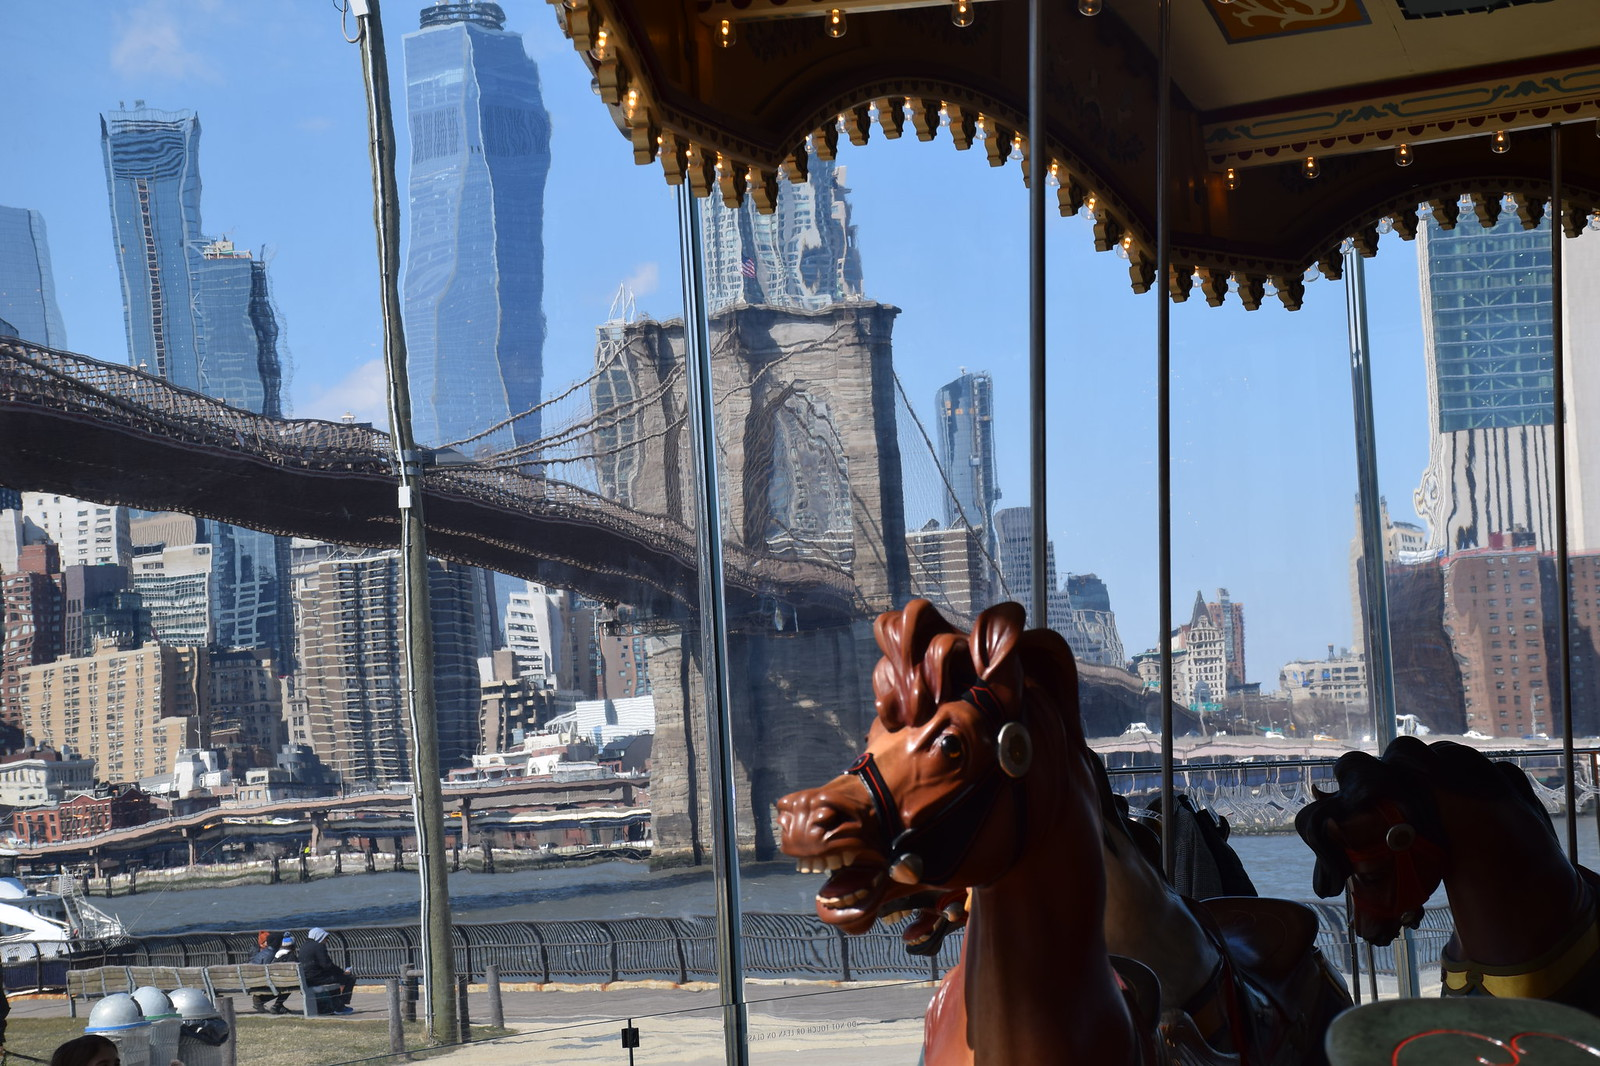 The carousel is just by the Brooklyn Bridge